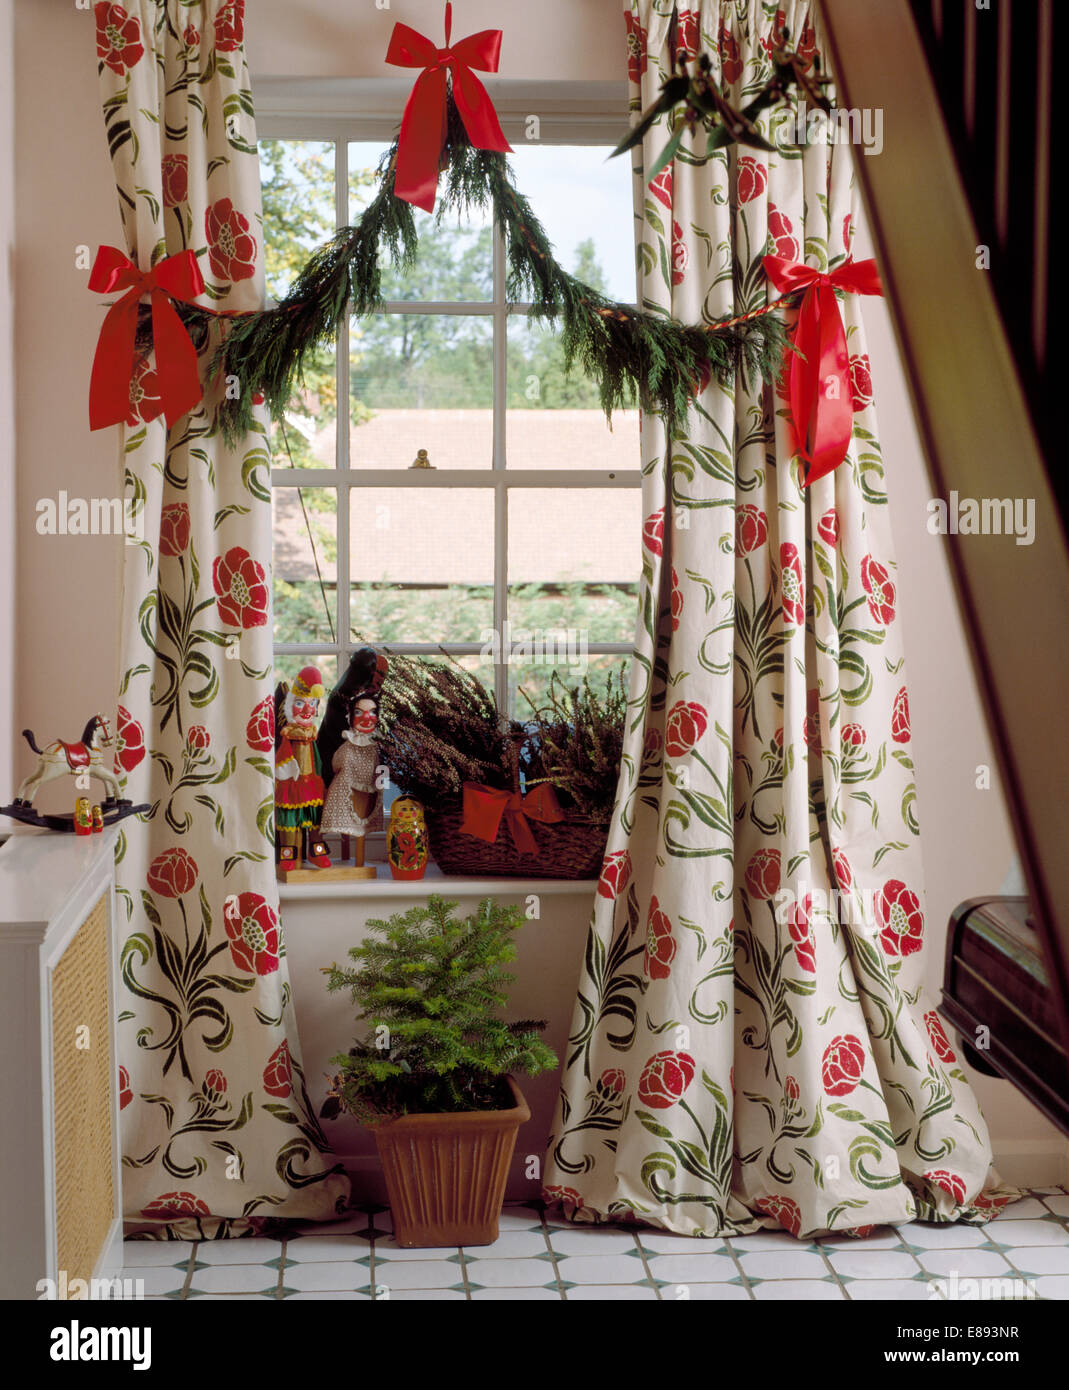 Red ribbons decorating simple conifer garland between ...